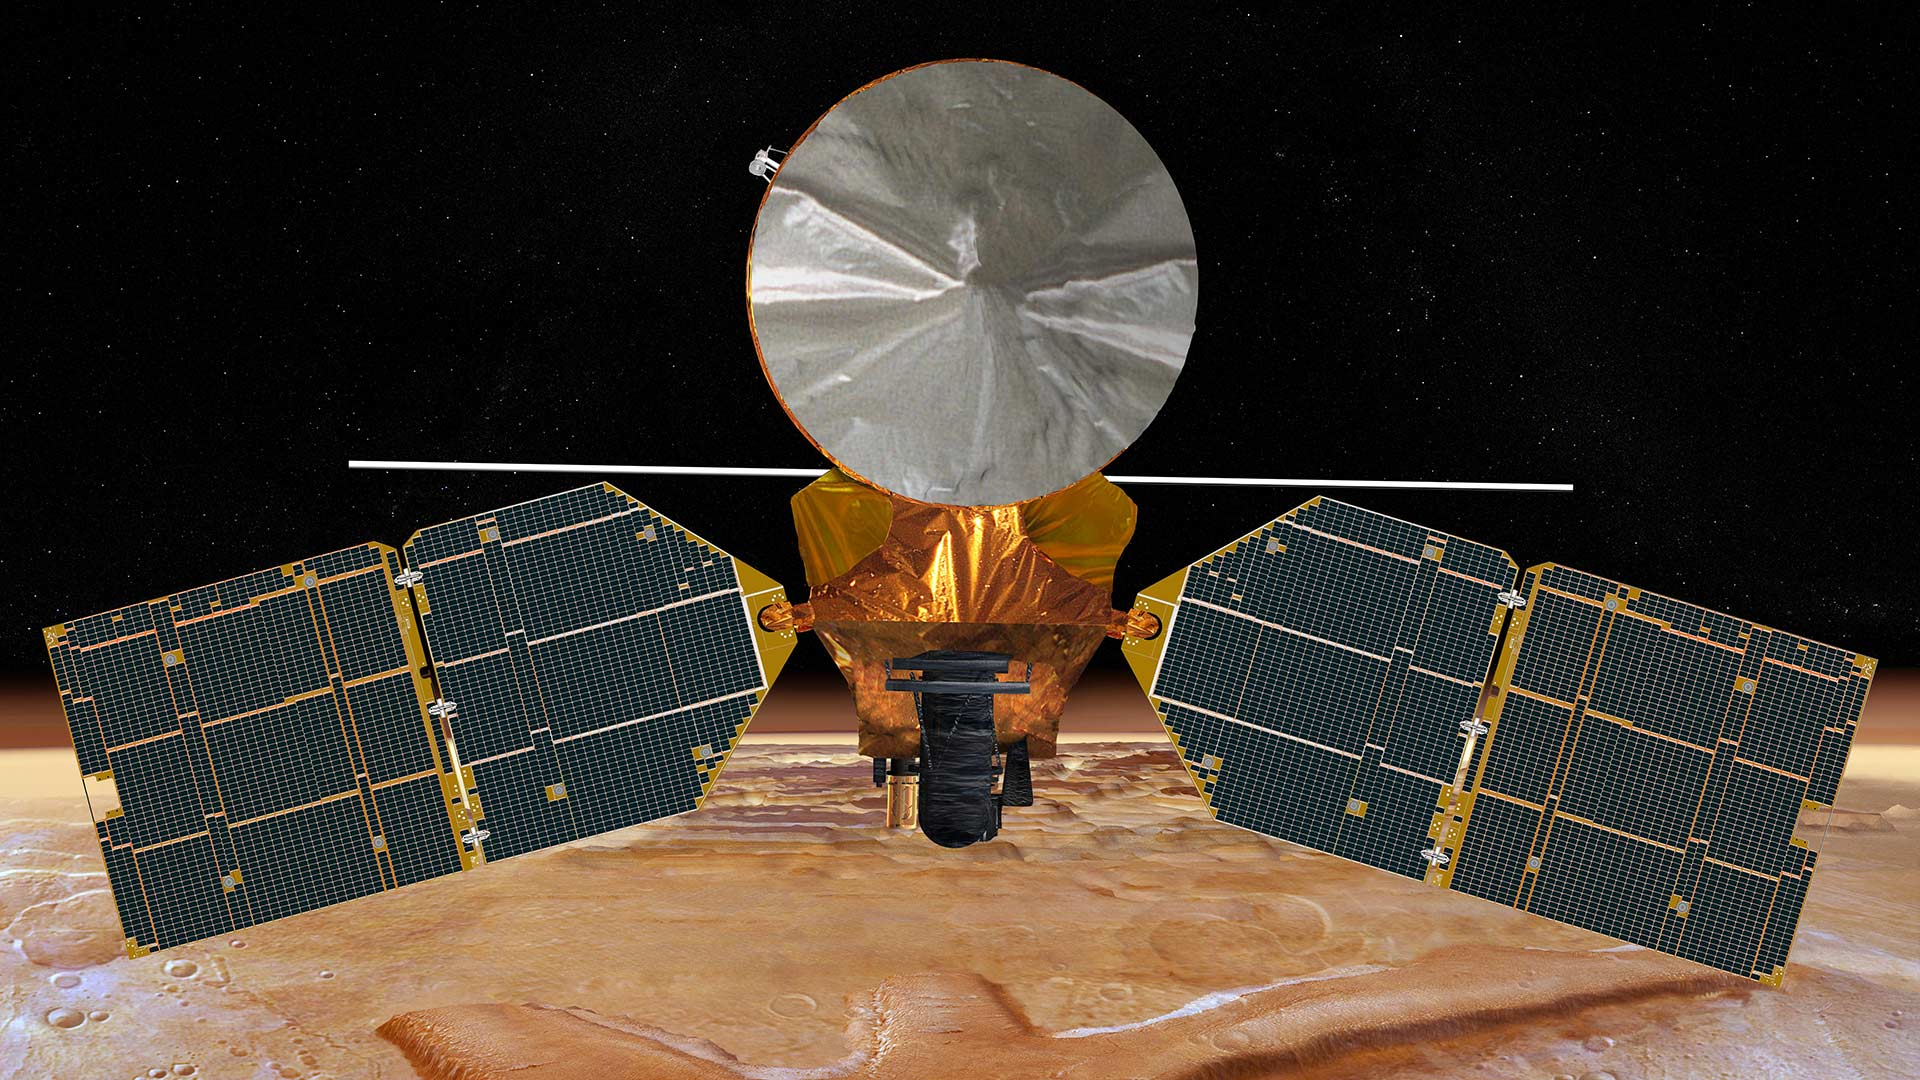 The UA HiRISE camera is aboard the Mars Reconnaissance Orbiter, which has been flying above Mars since March 2006.